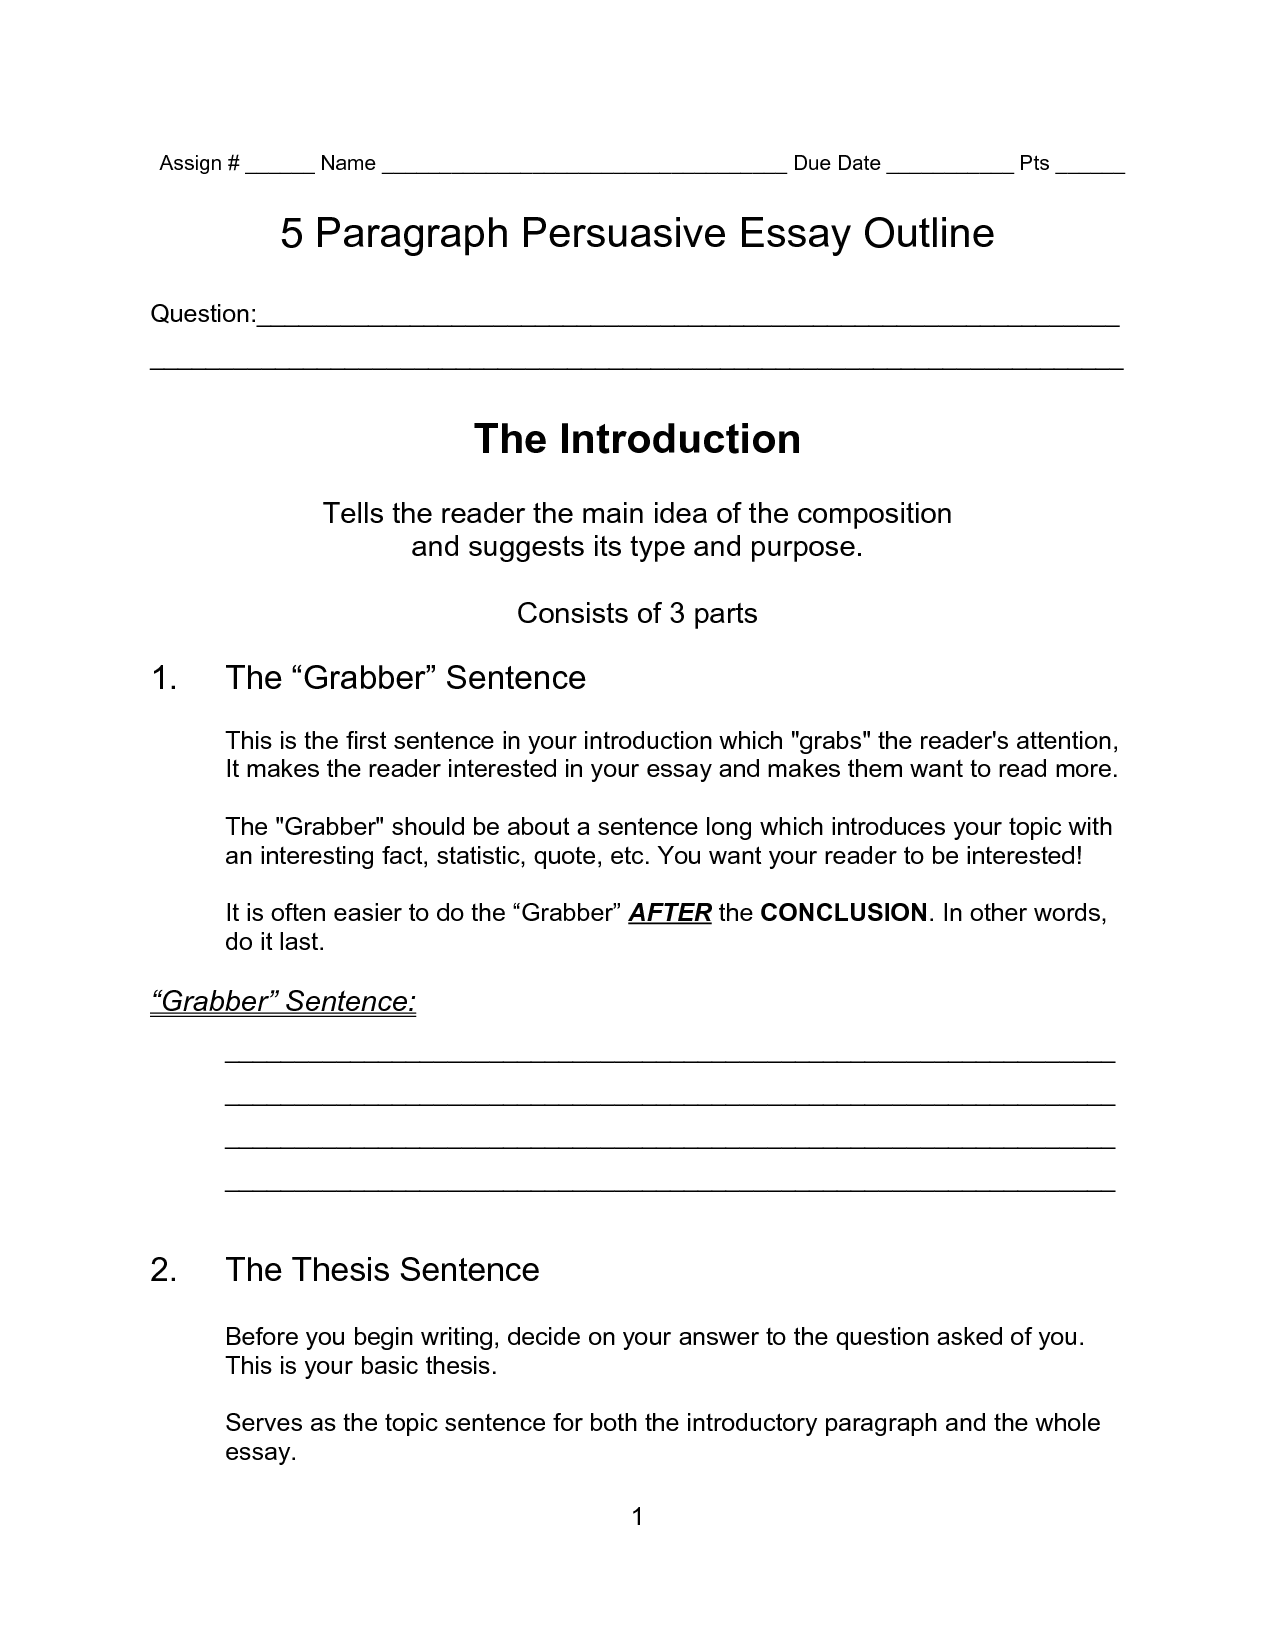 Writing a persuasive essay introduction